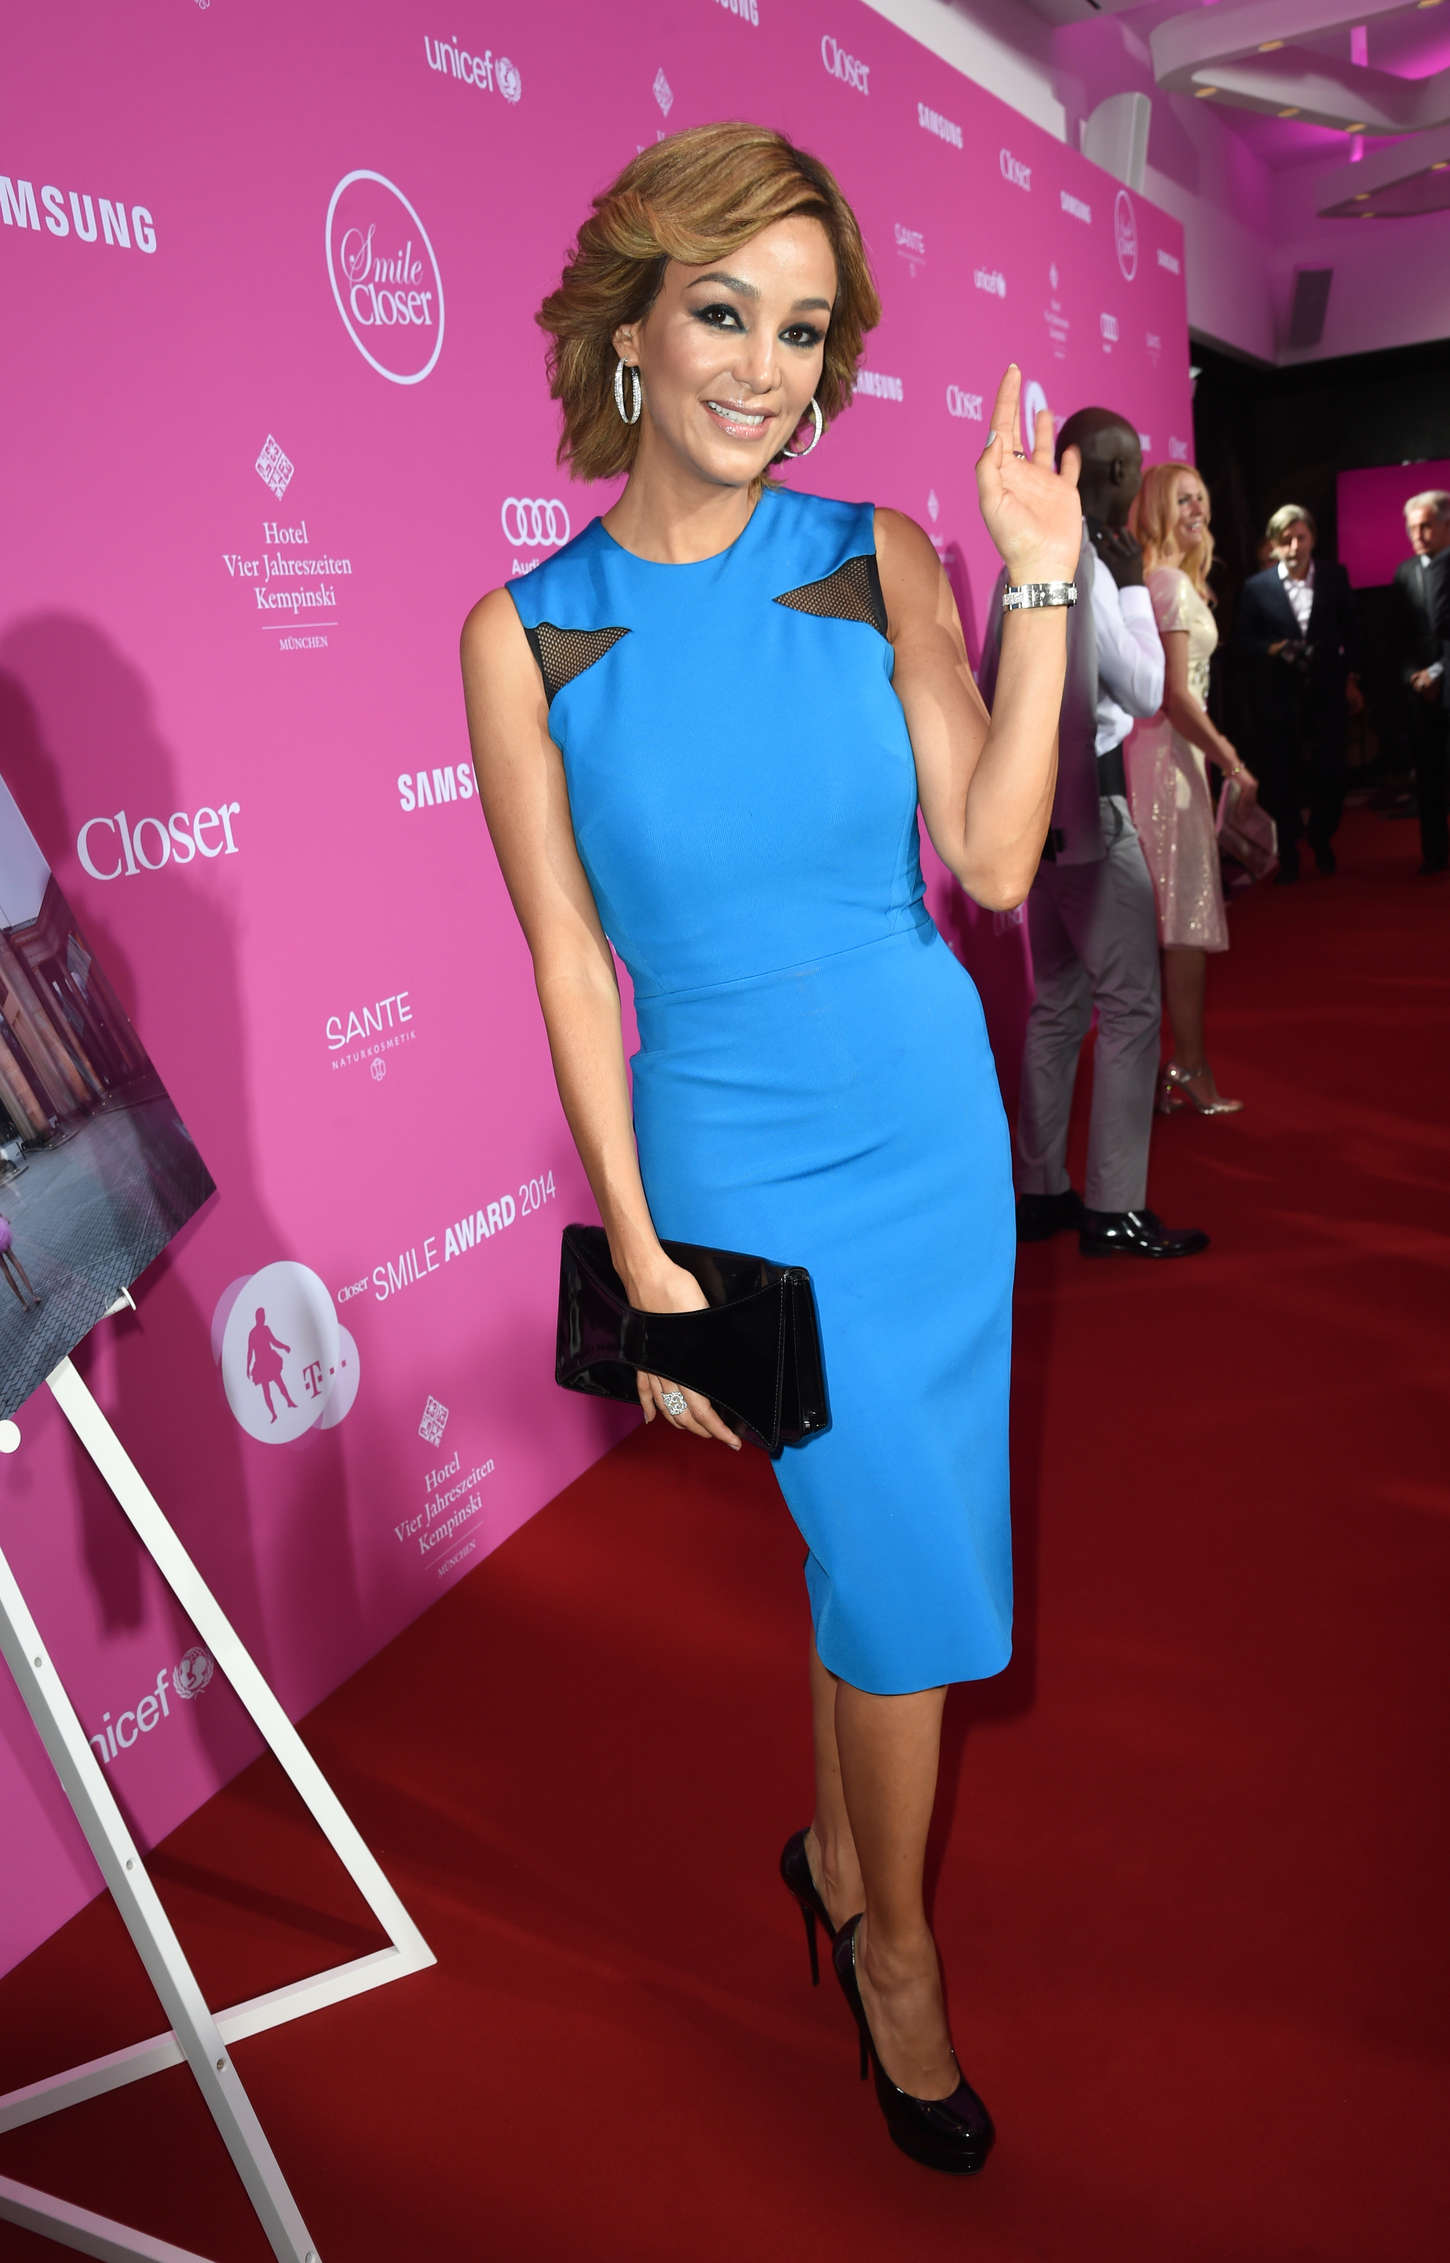 Verona Pooth Closer Magazin Smile Award in Munchen